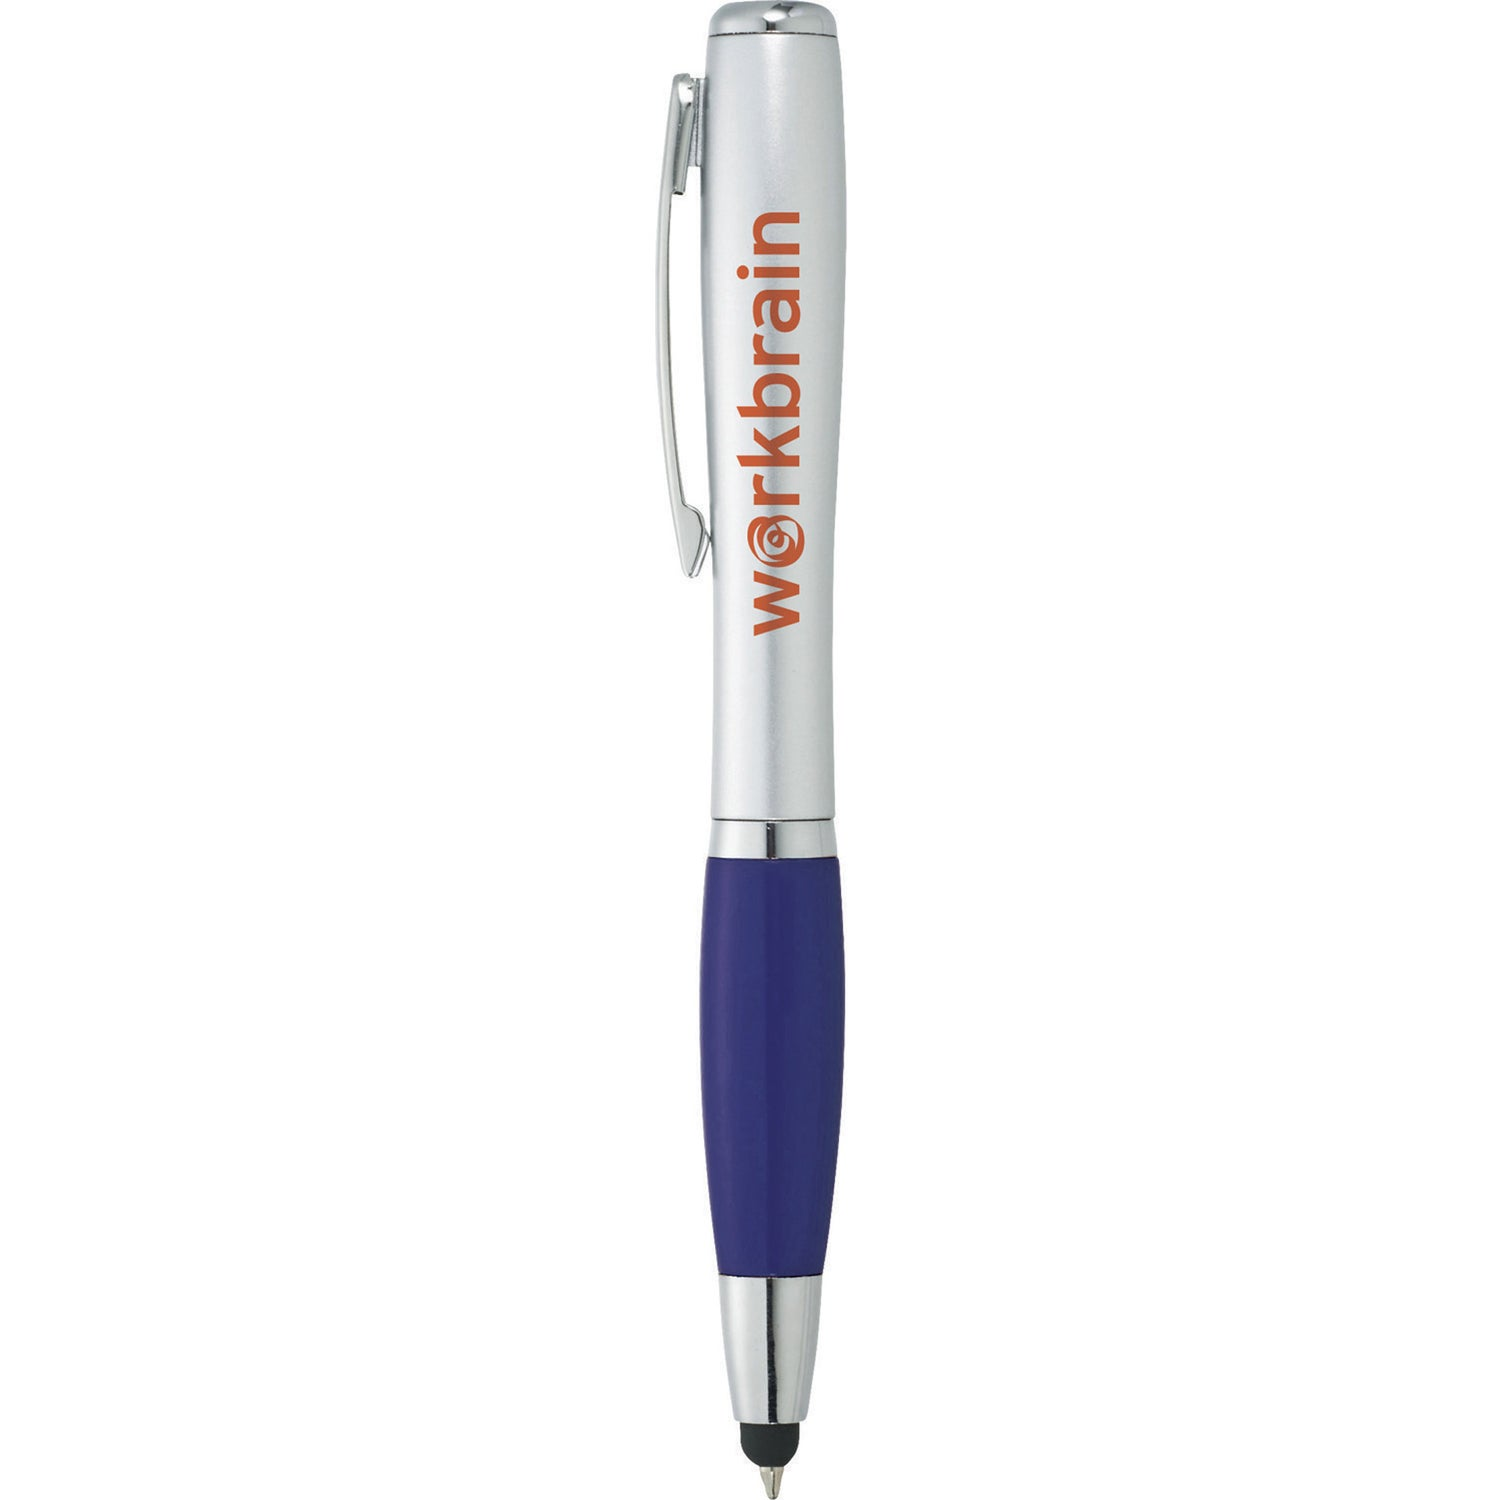 Nash Pen-Stylus and Light (Glamour)